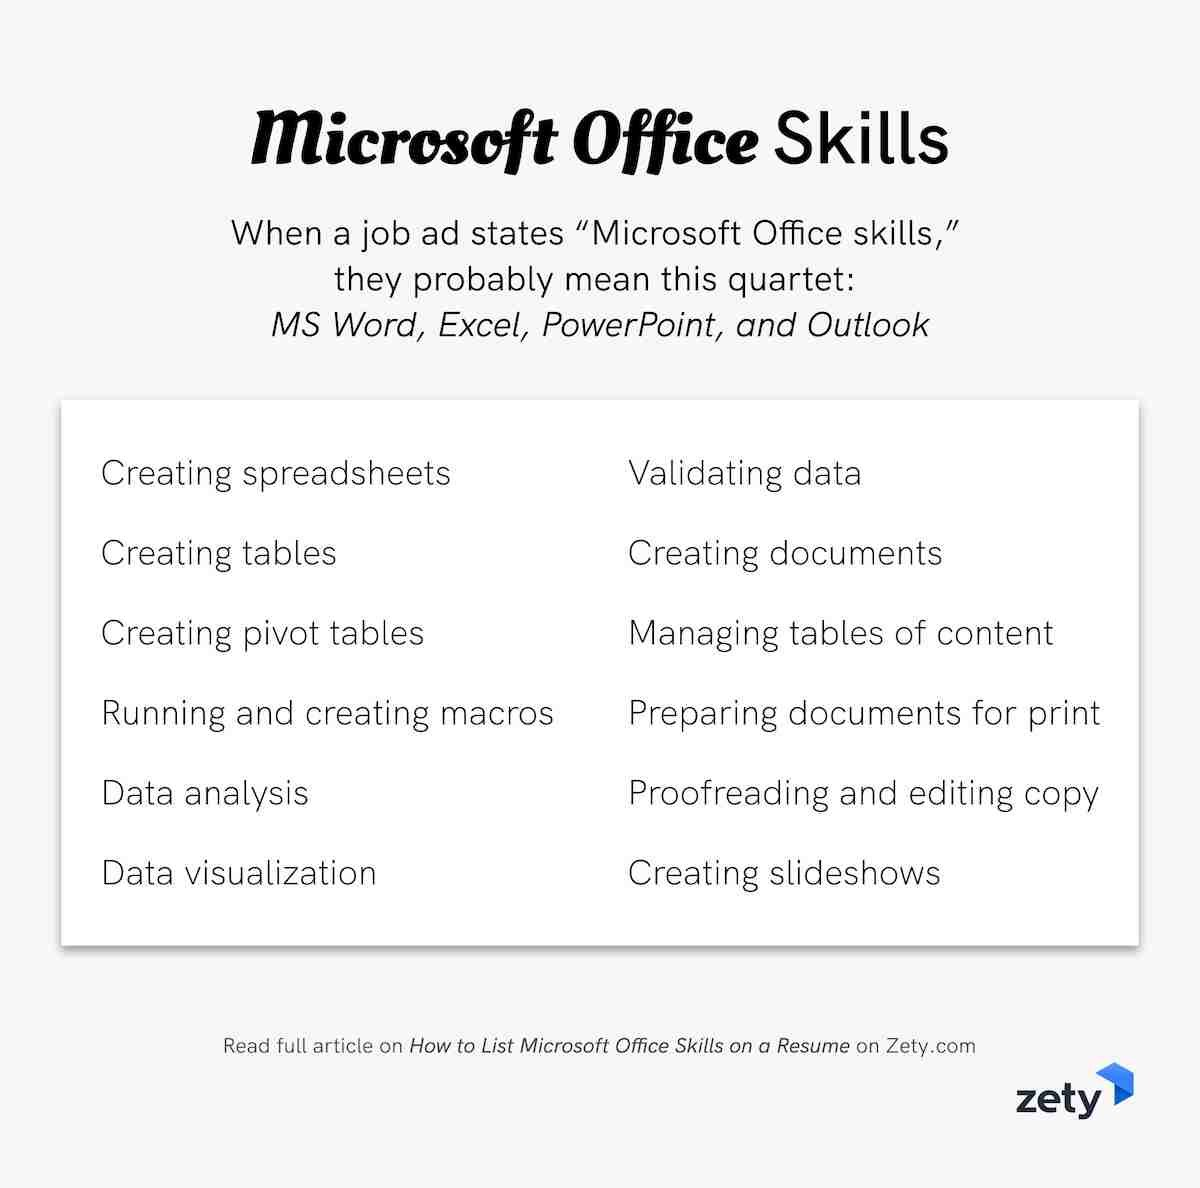 how to list microsoft office skills on a resume in 2020